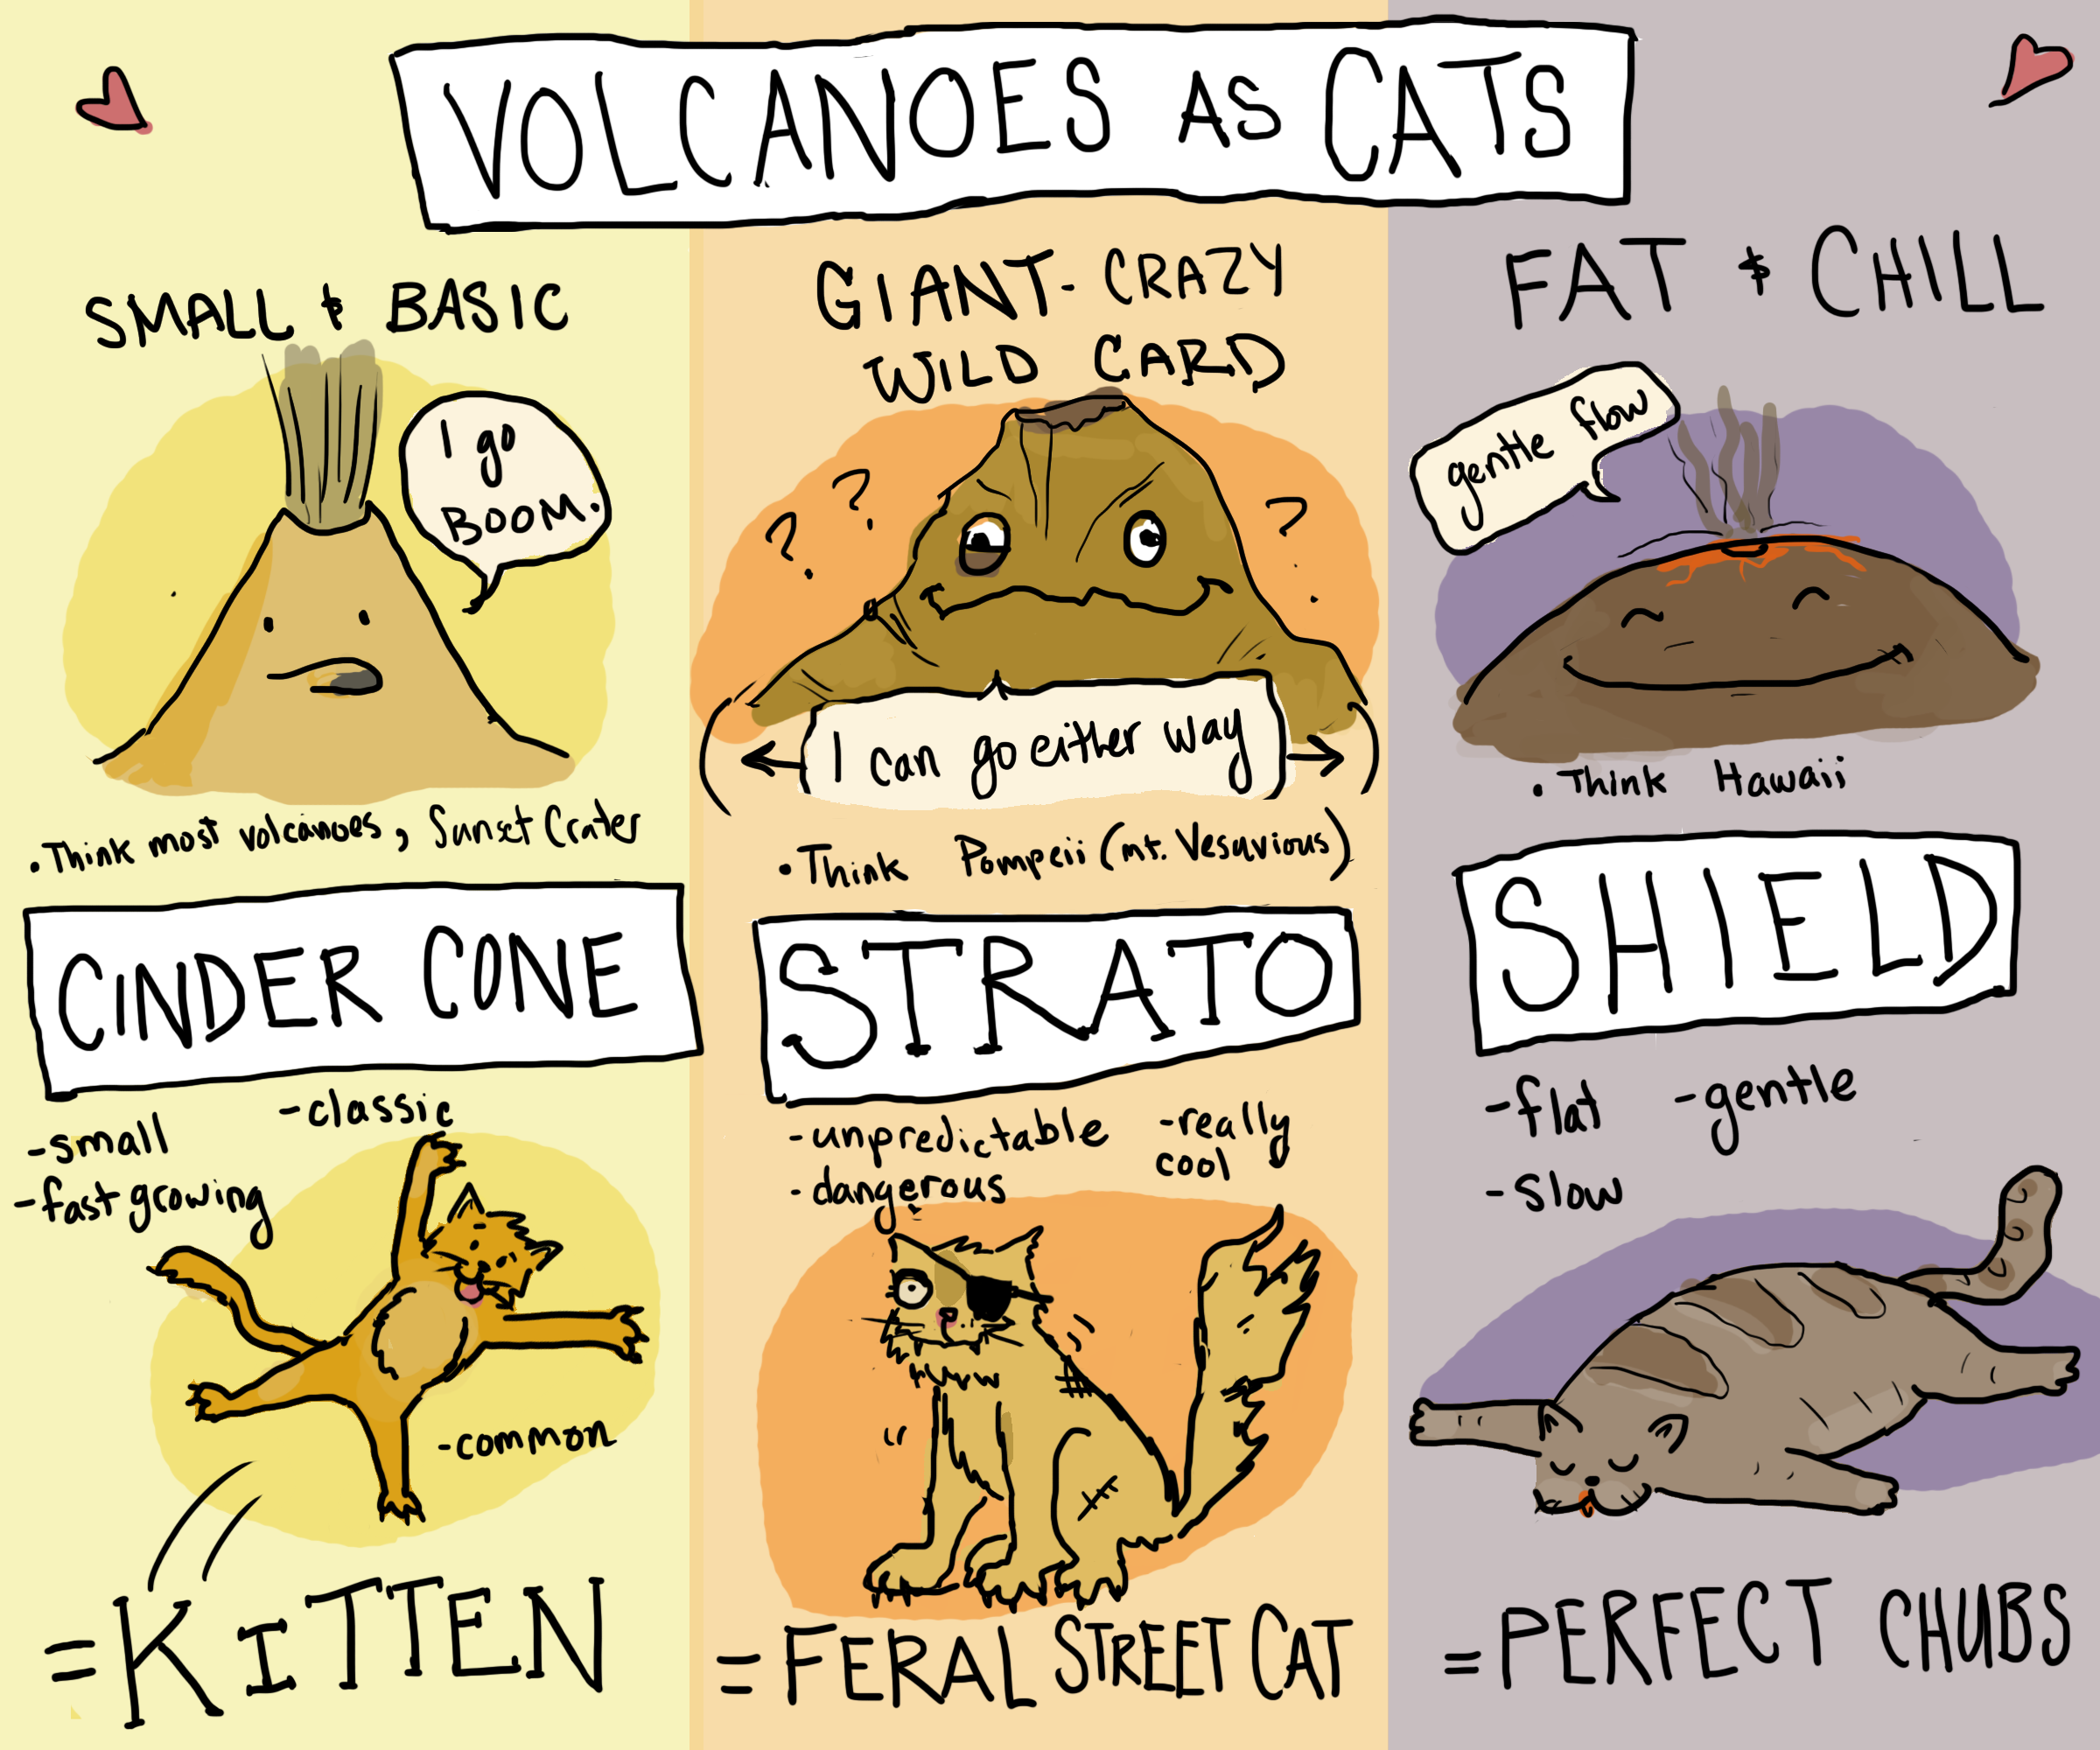 Volcanoes as Cats